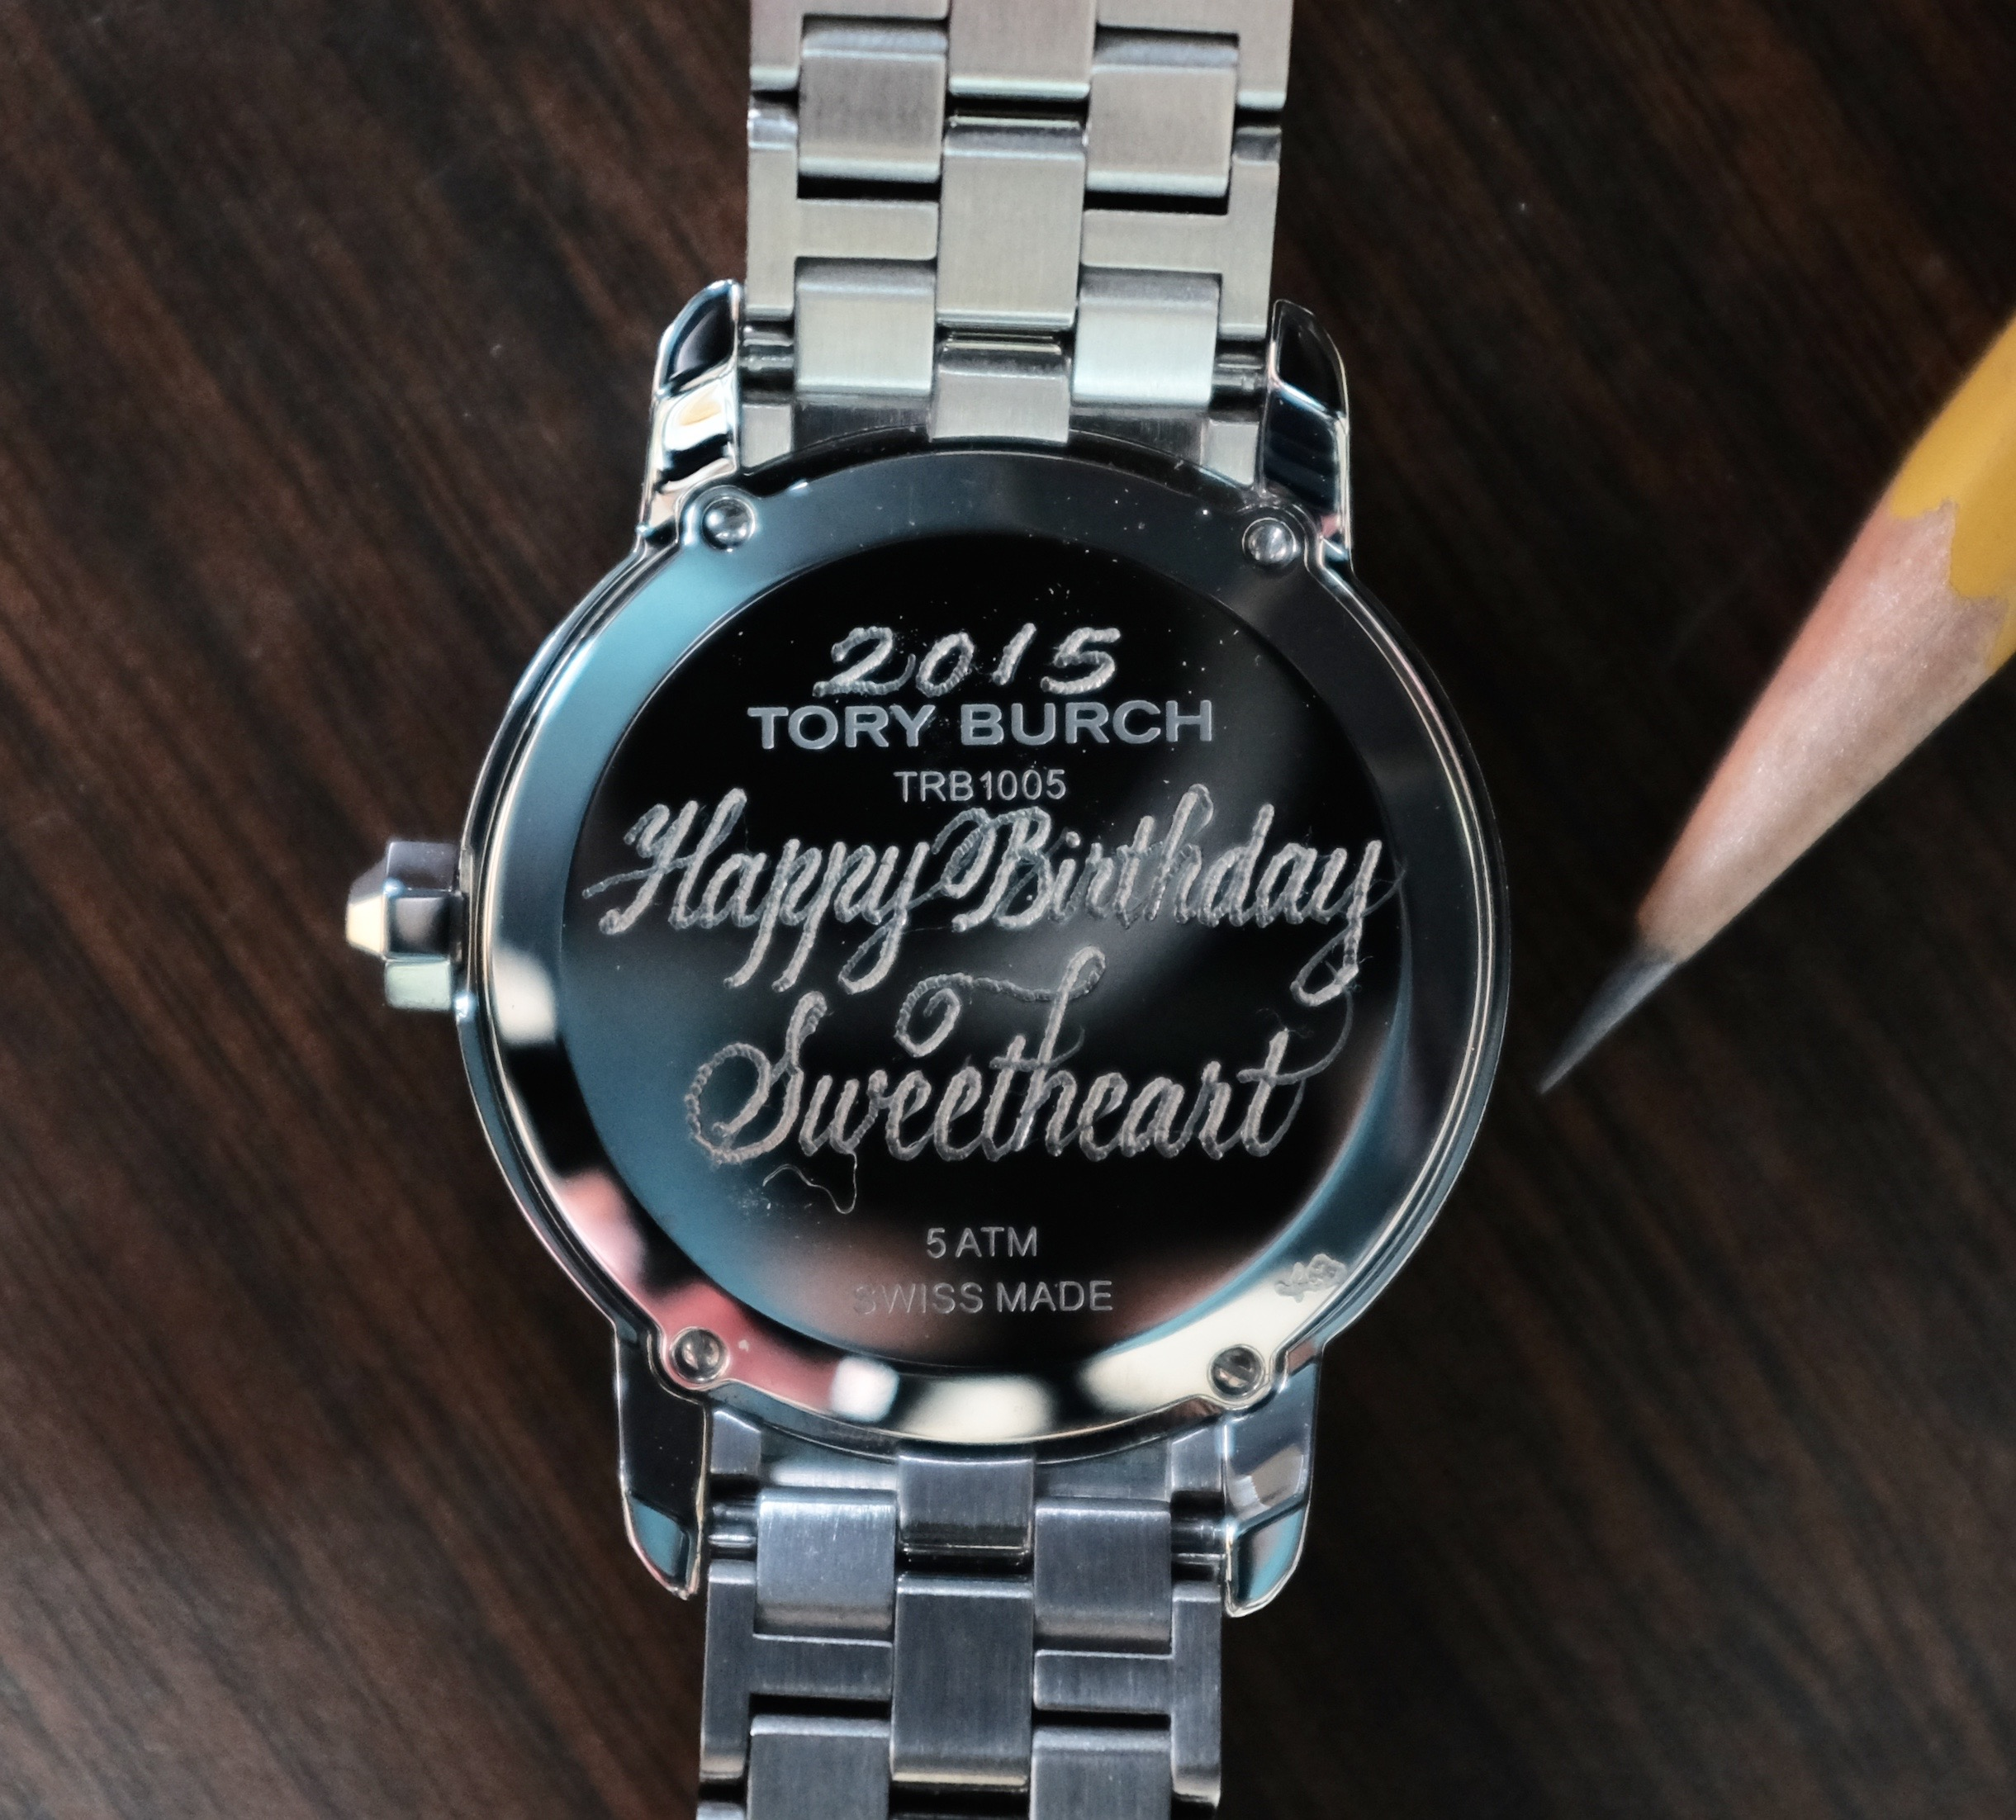 Watch Engraving Quotes: What To Engrave On A Watch. With What To Engrave On A